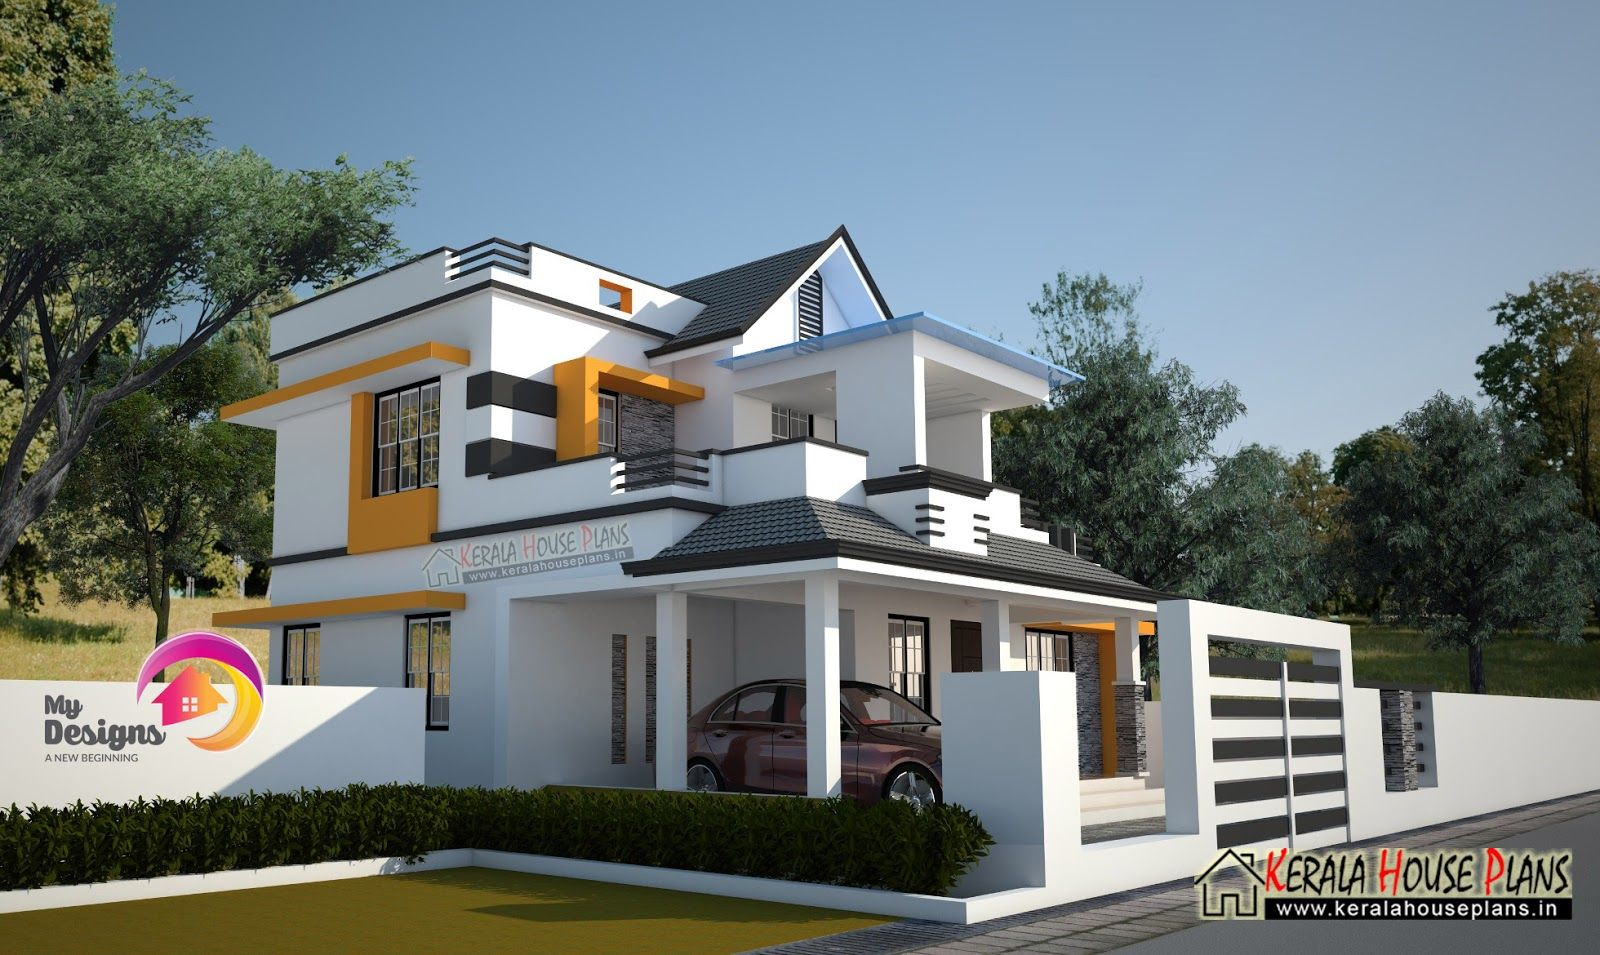 Kerala house plans elevation floor plankerala home